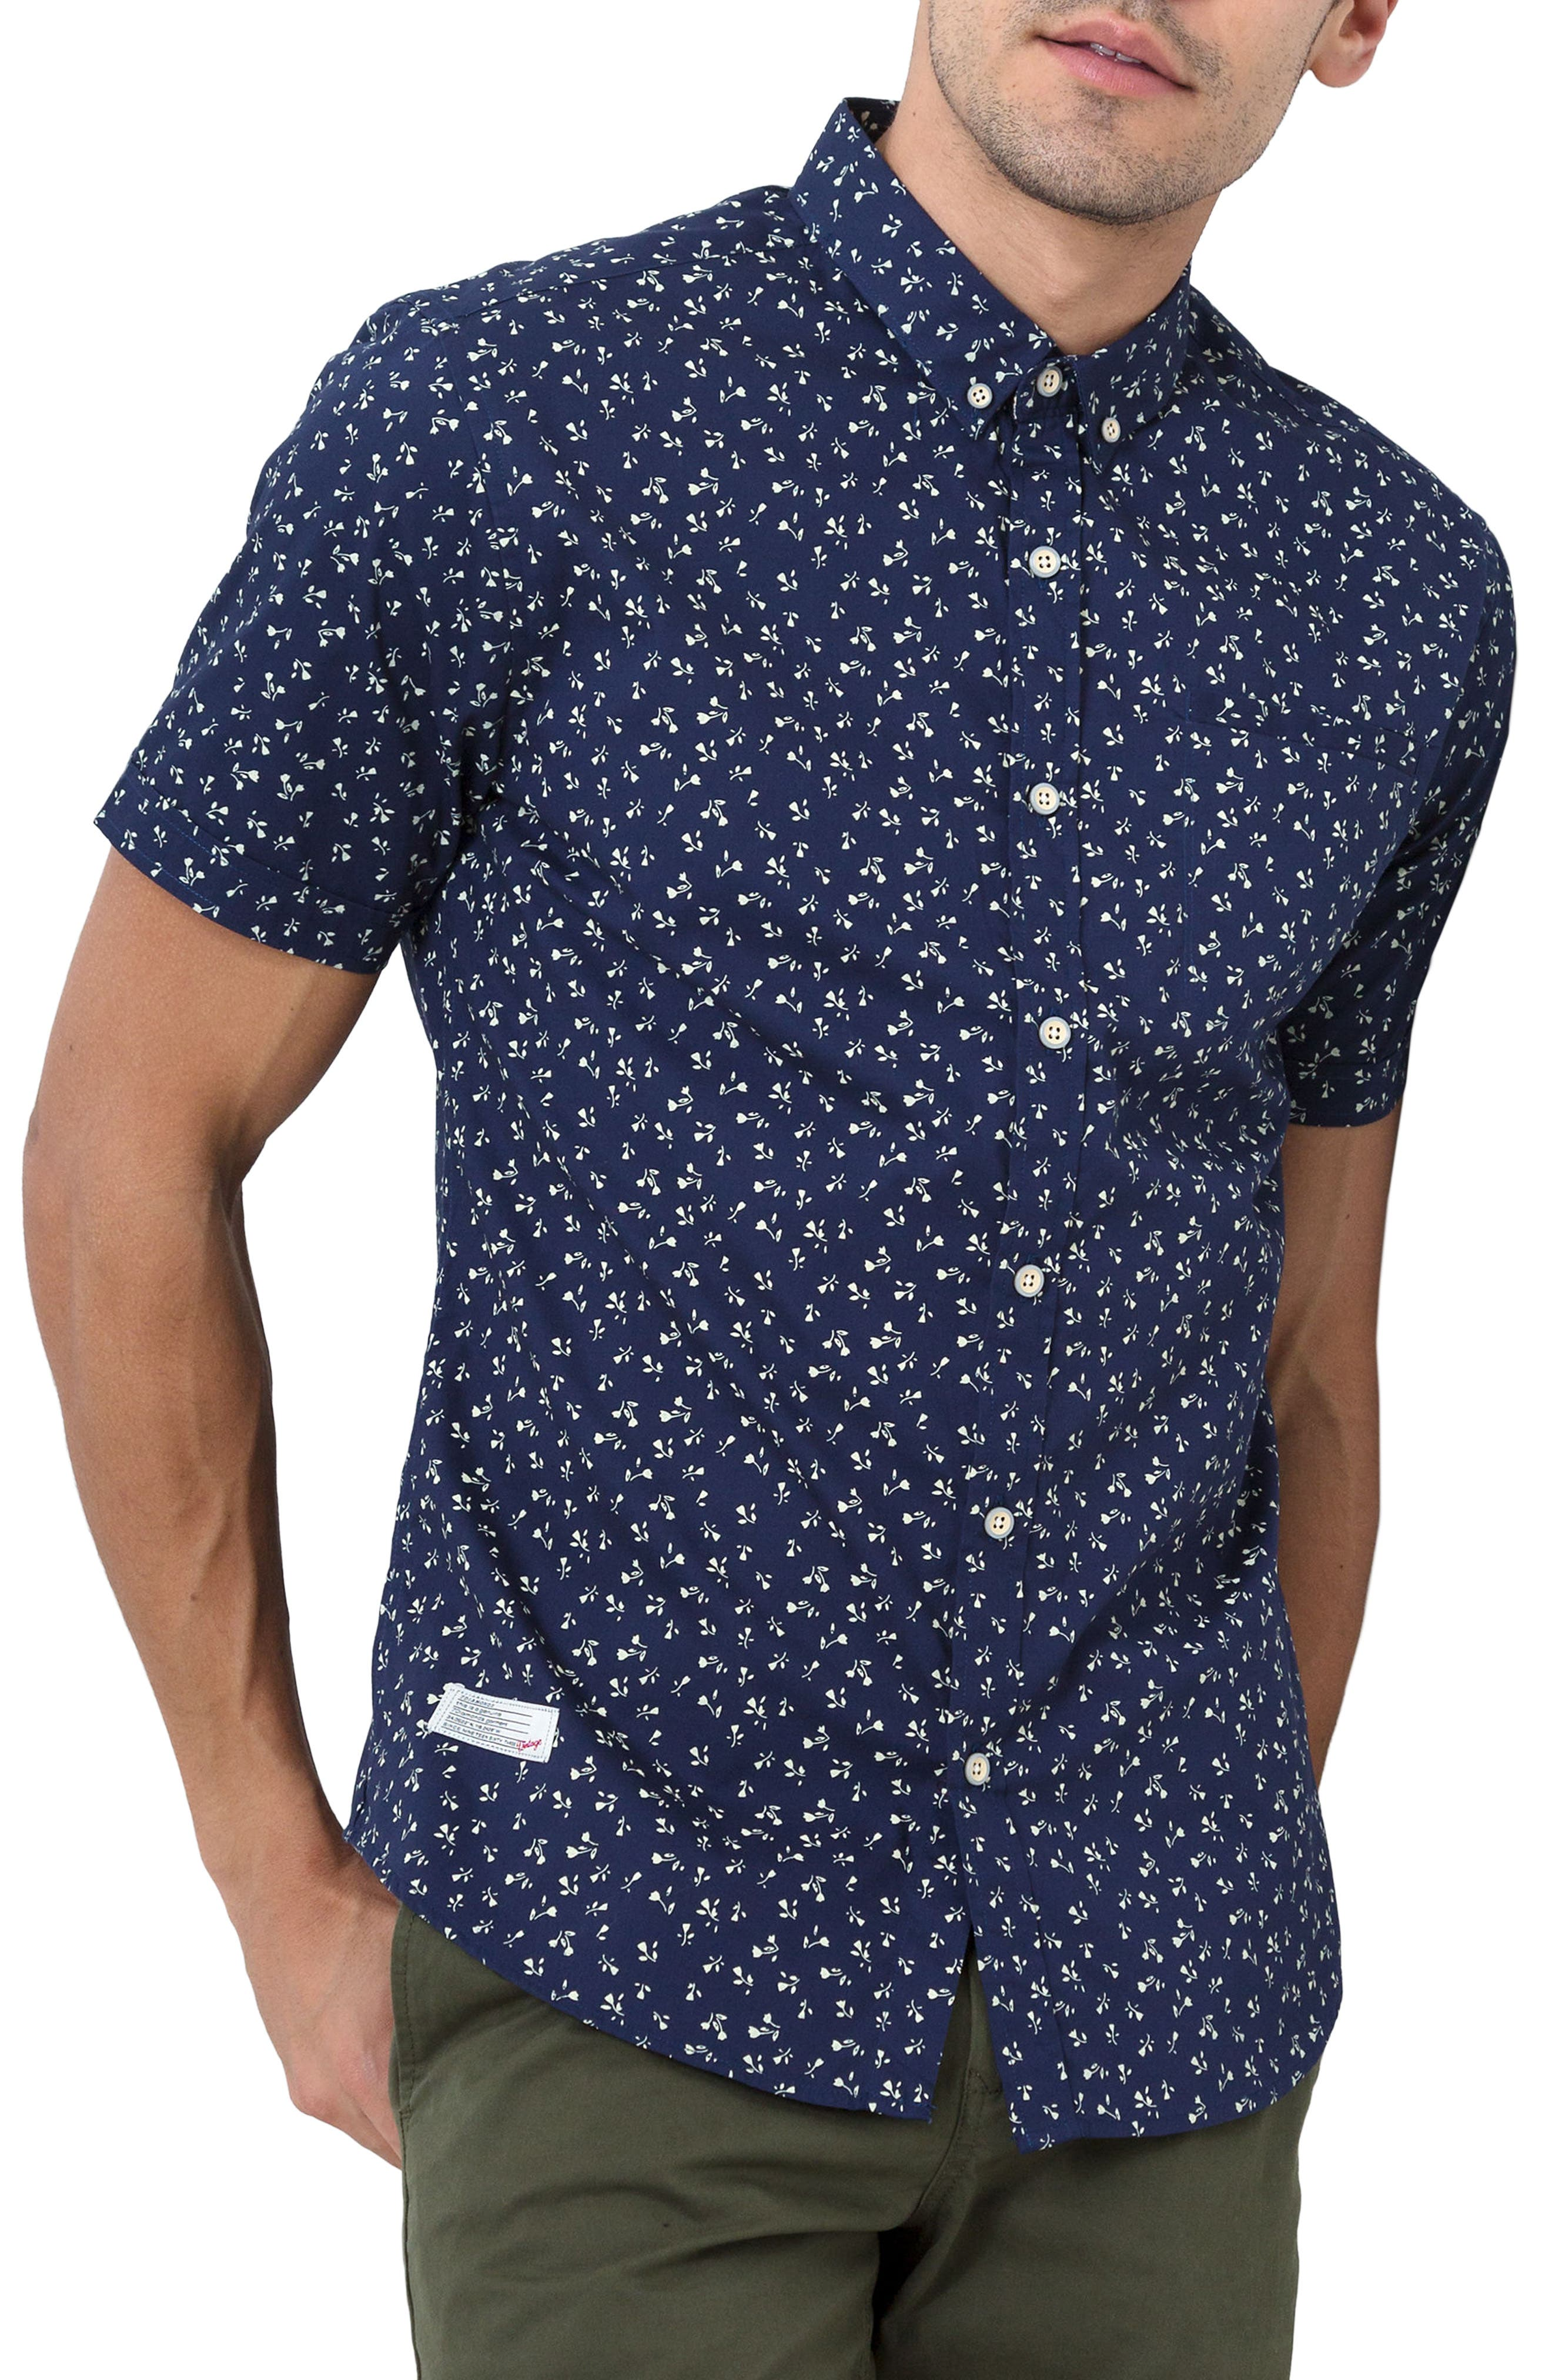 7 Diamonds Editions of You Trim Fit Short Sleeve Floral Print Woven Shirt